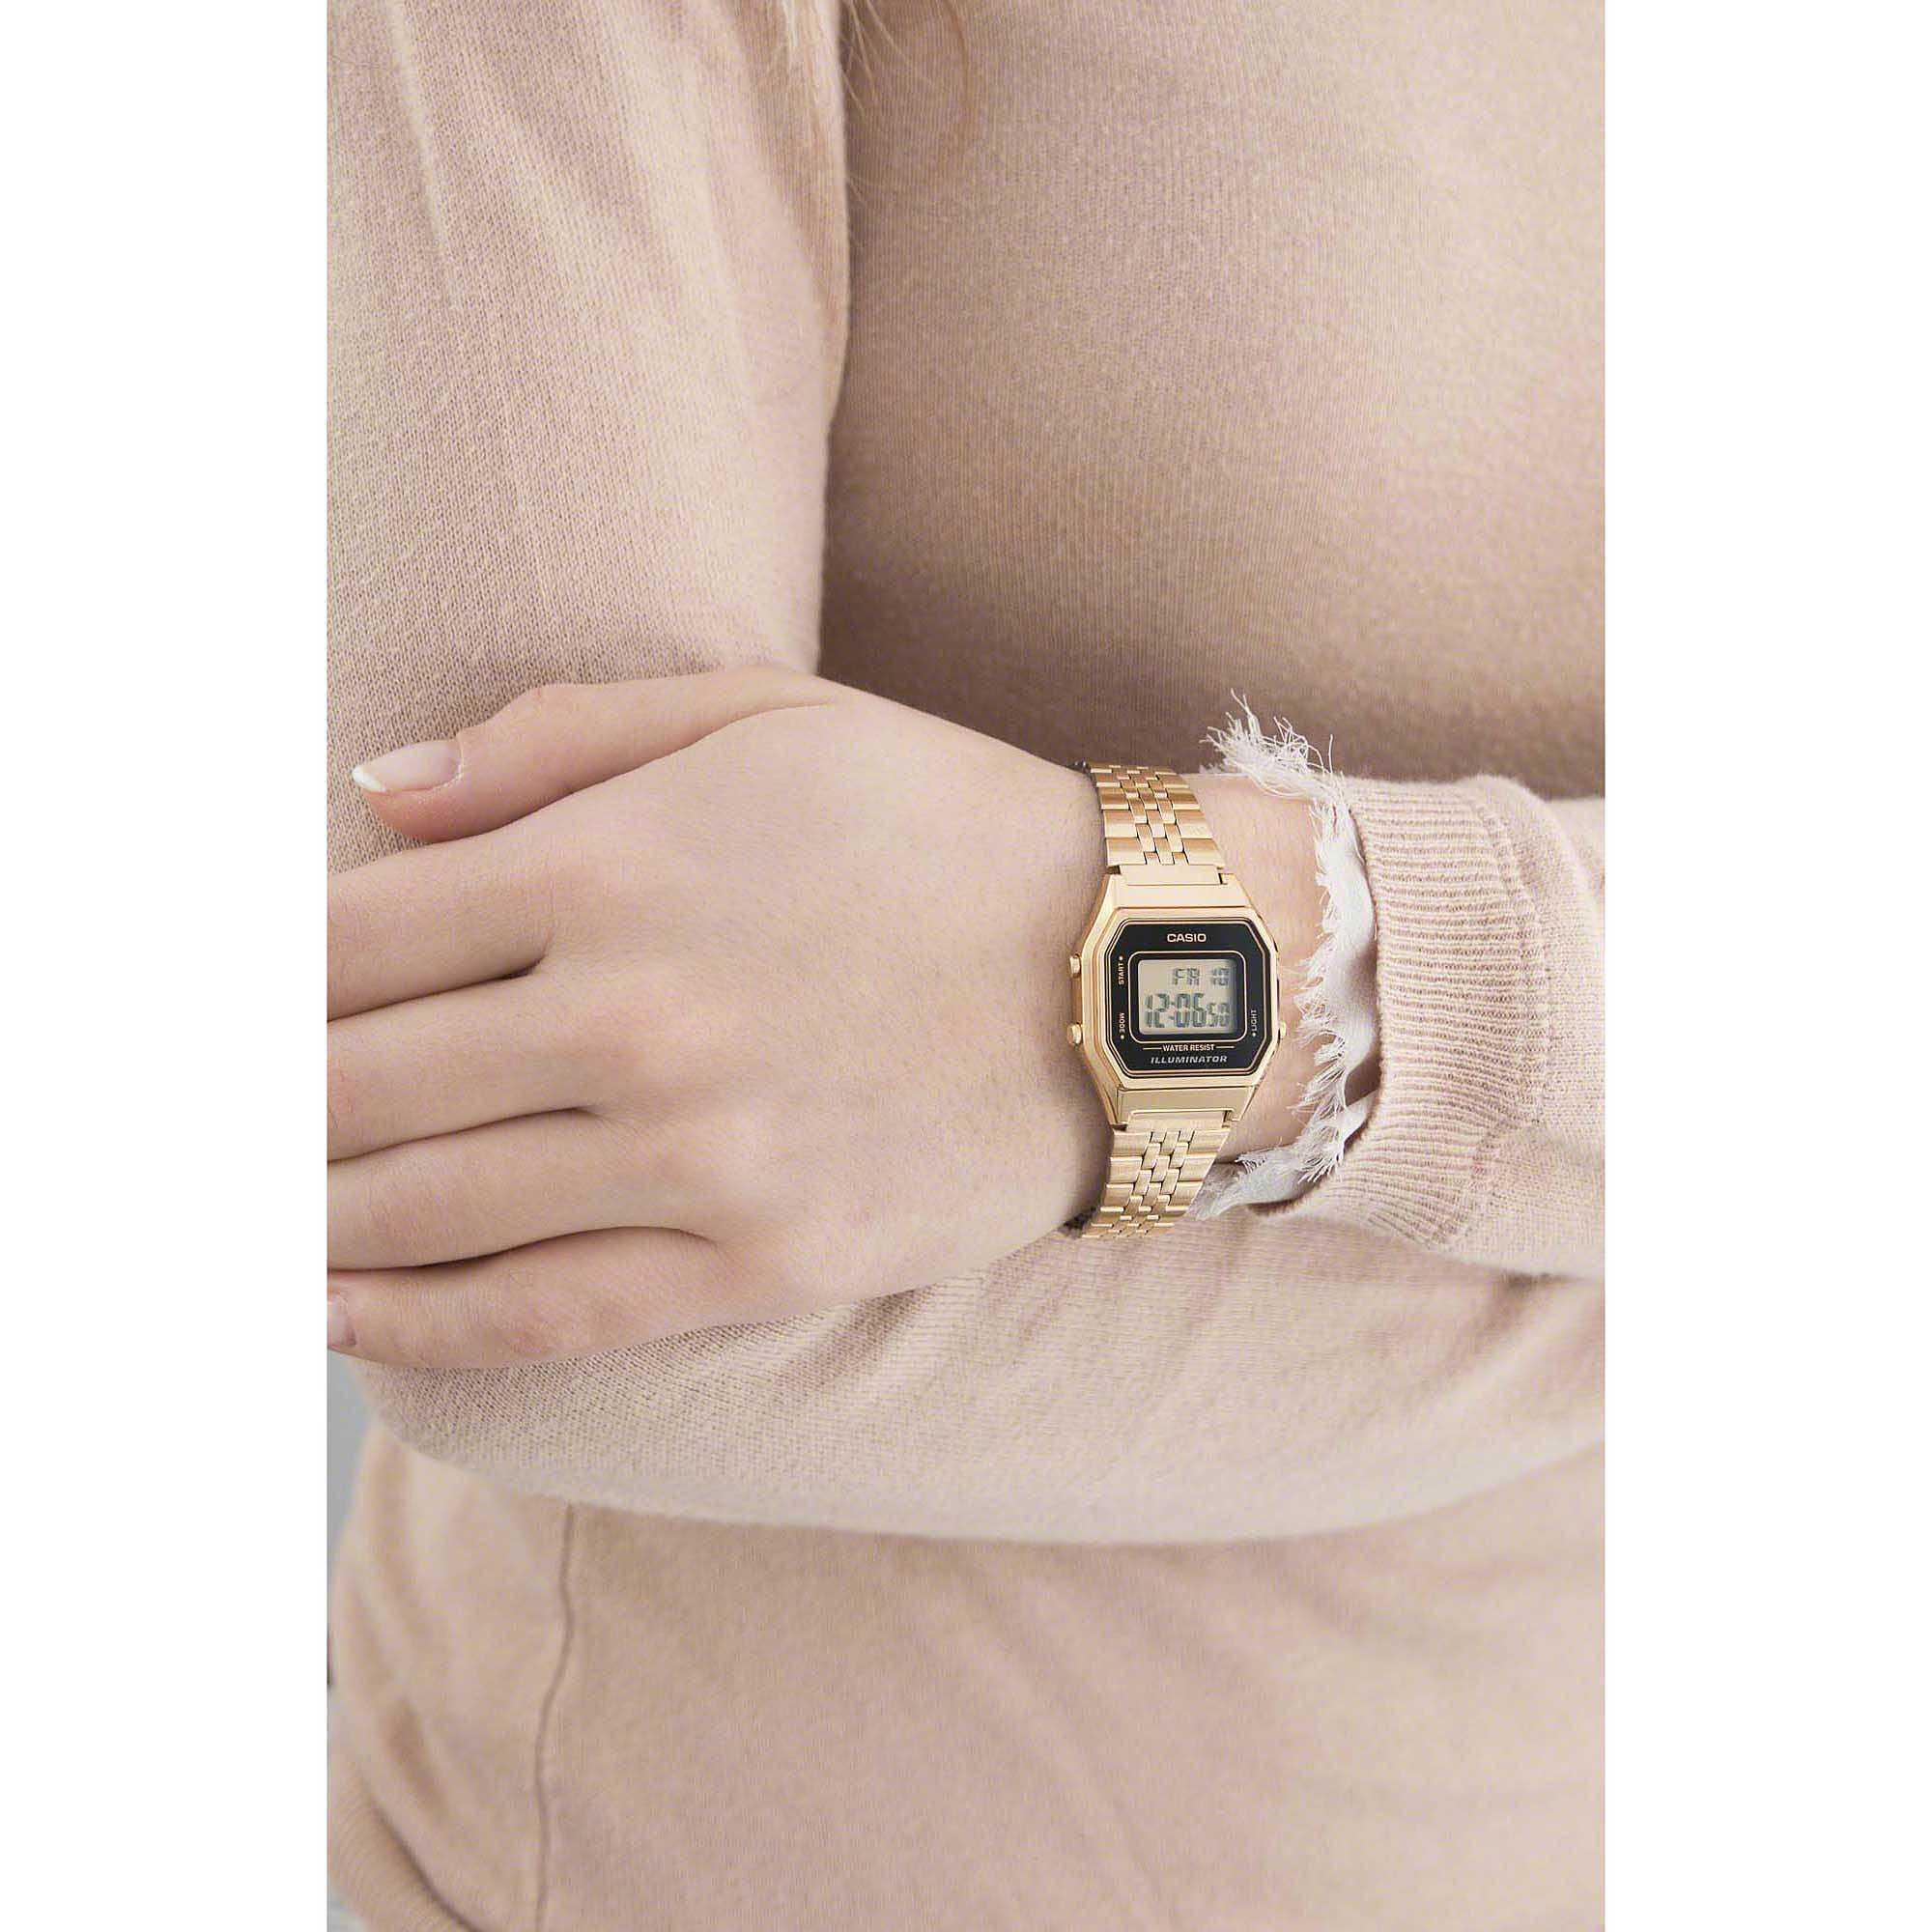 watch digital unisex Casio CASIO COLLECTION LA680WEGA 1ER